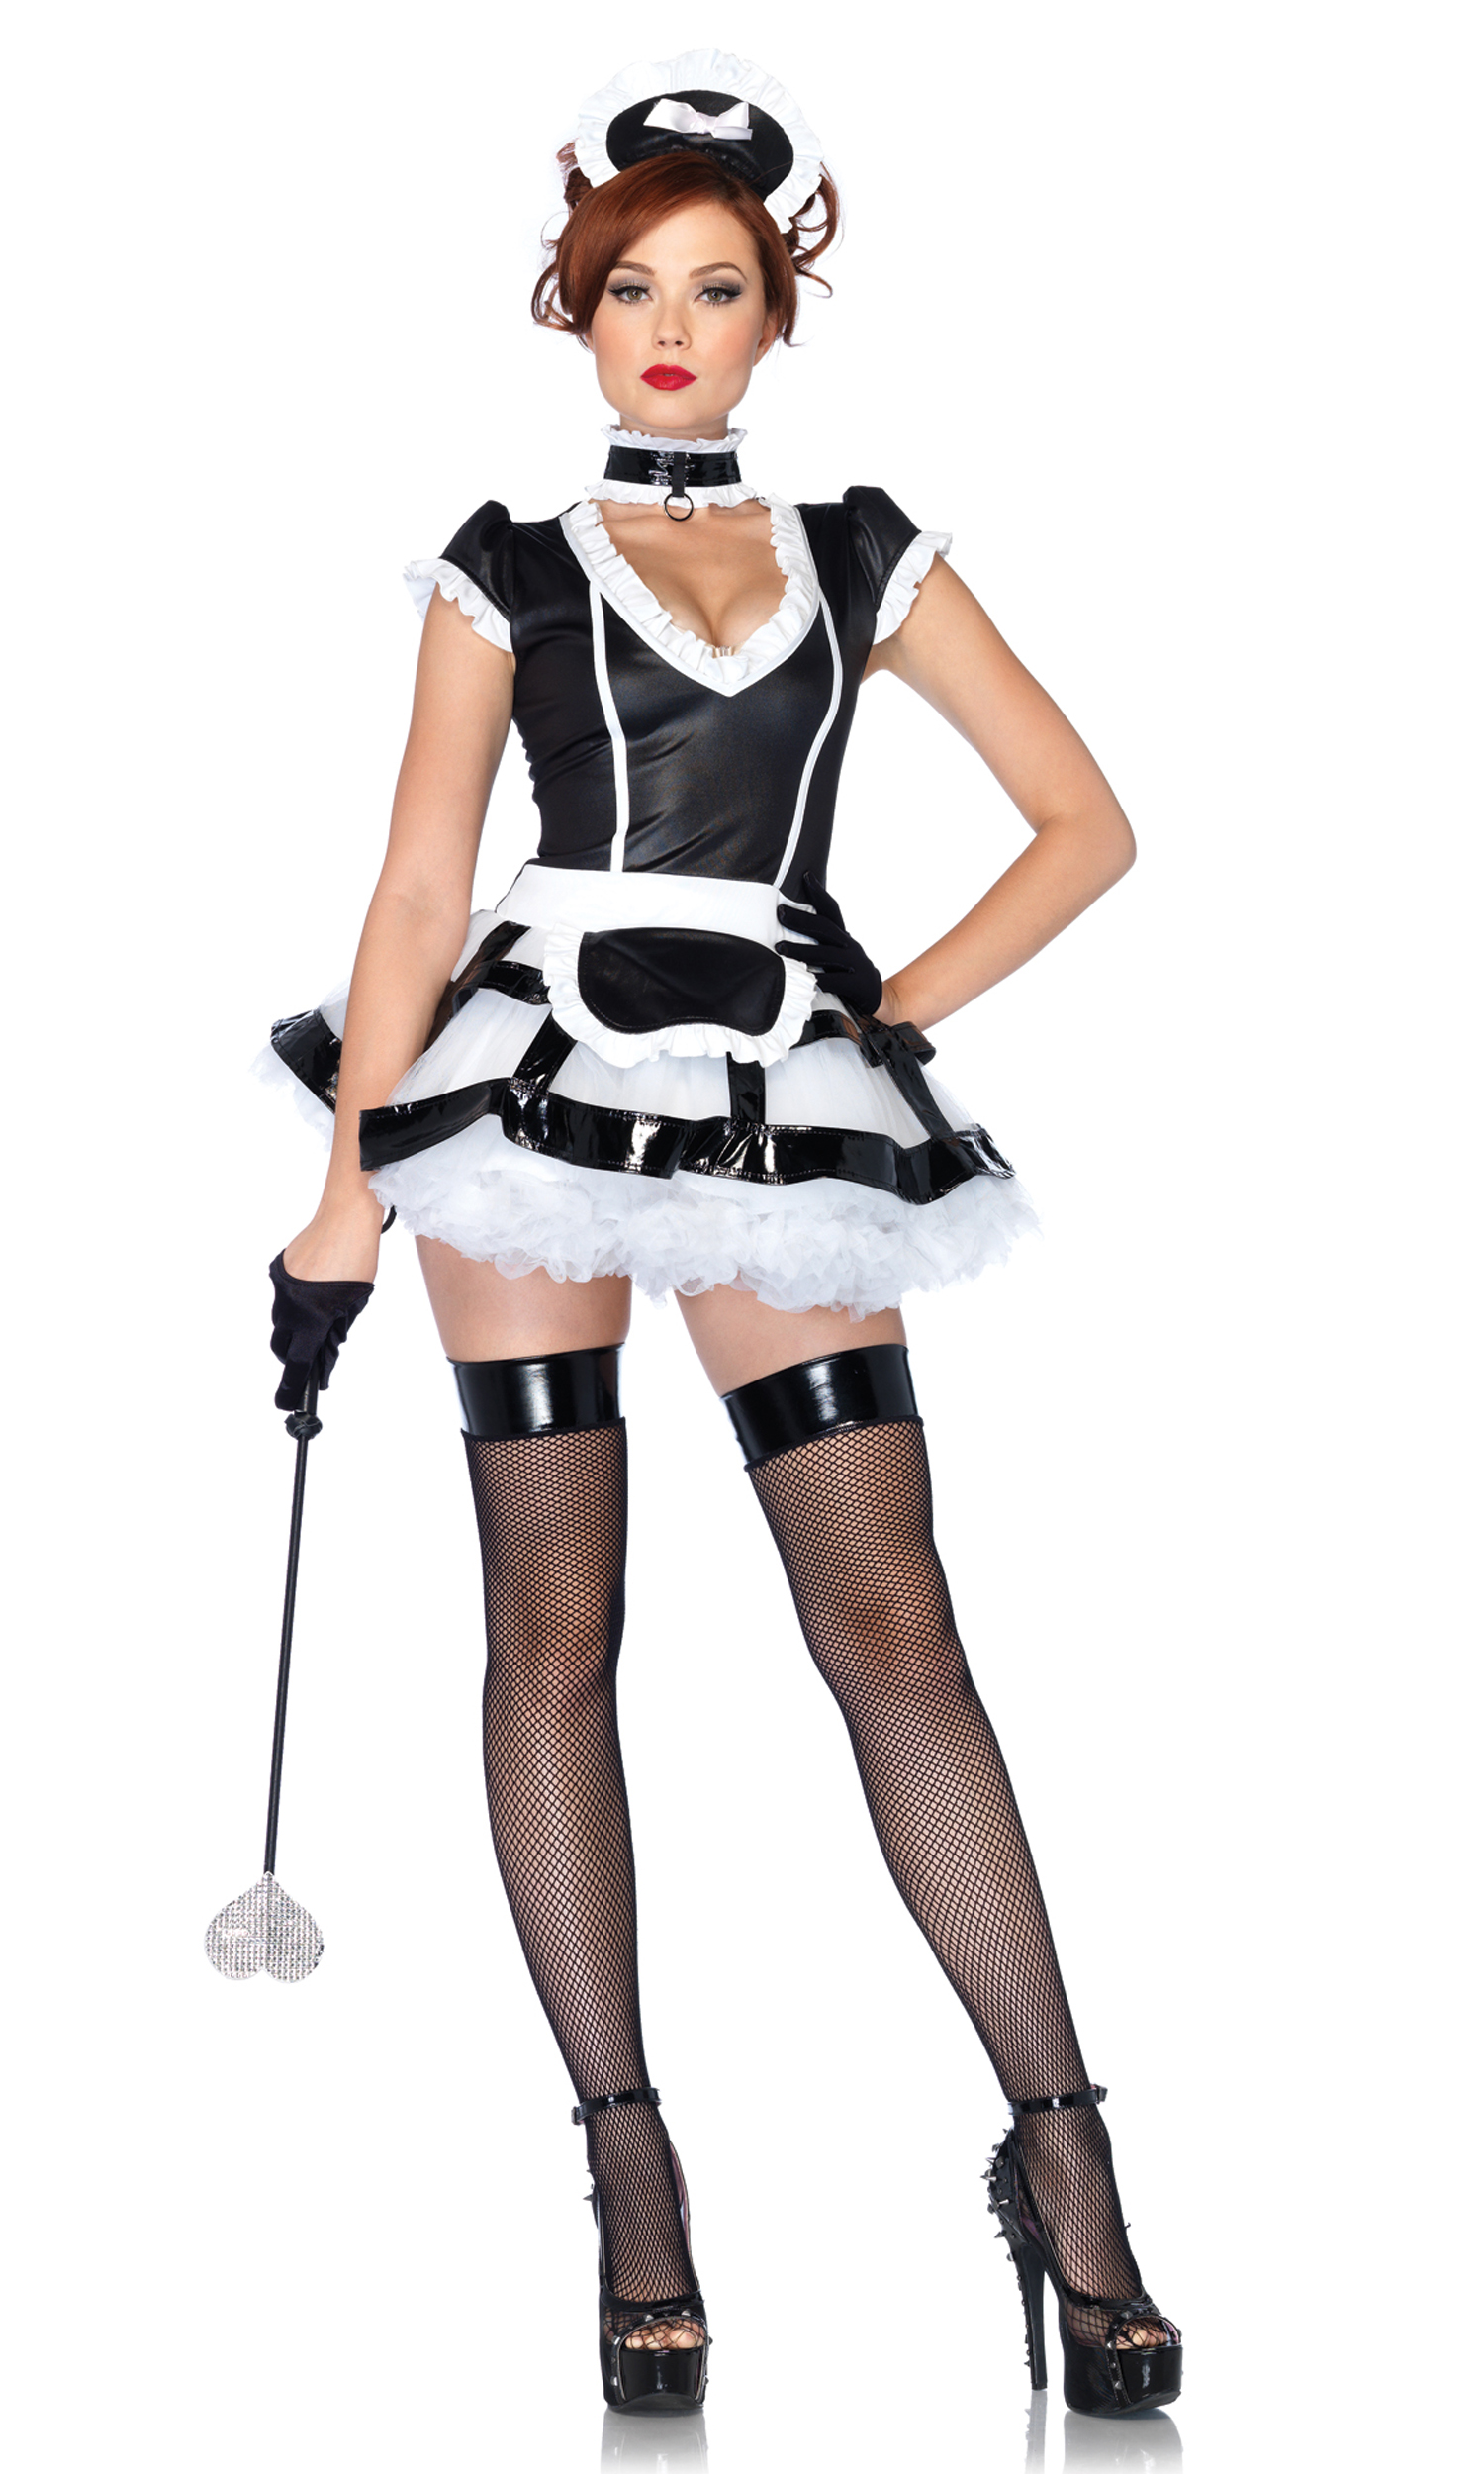 Fetish french maid pic